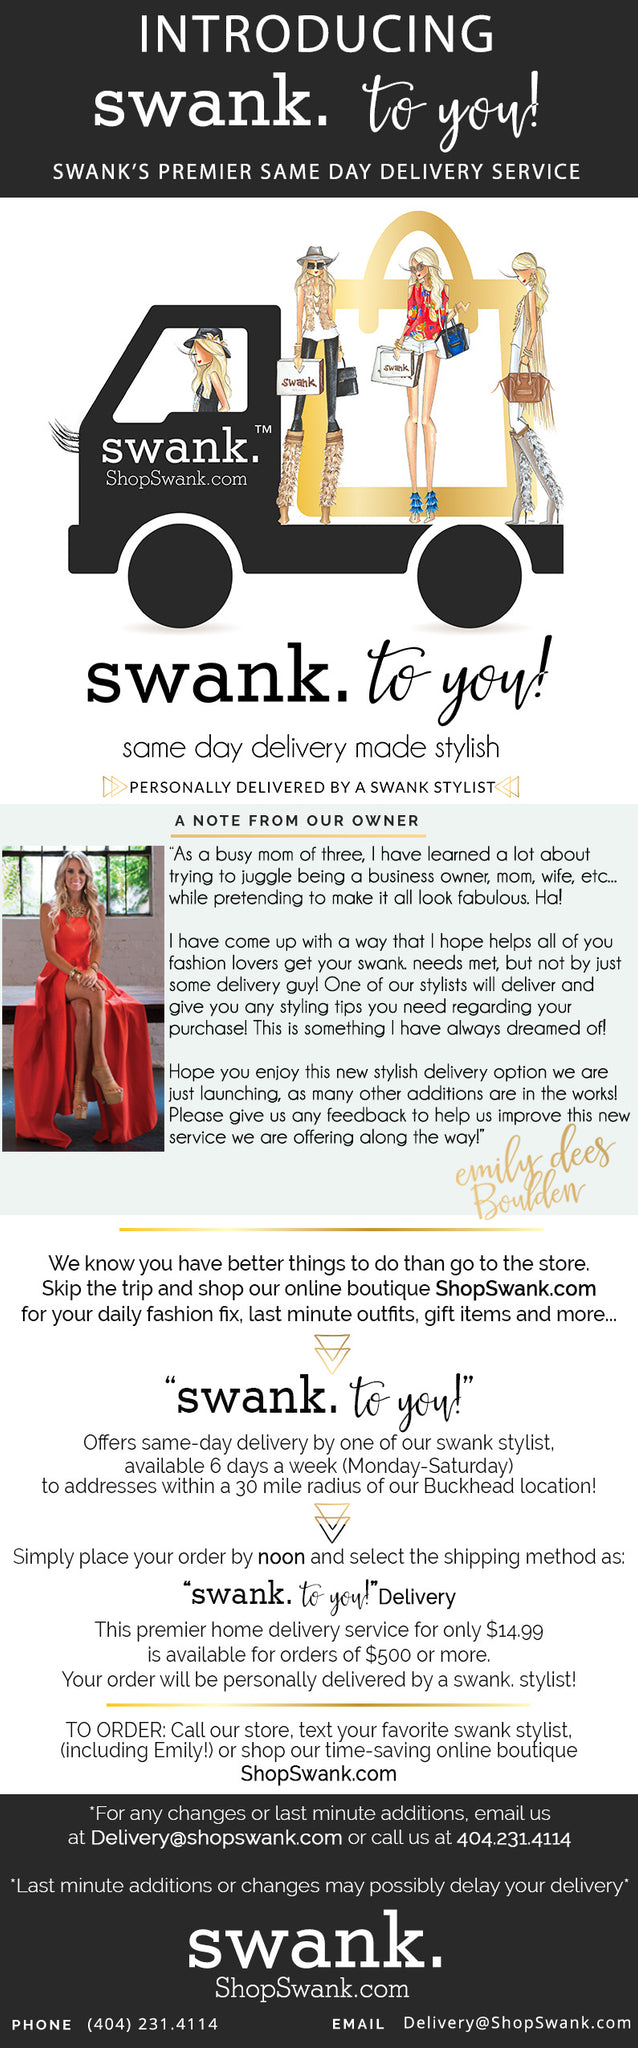 Introducing... swank. to you! Swank's premier same-day delivery service by a swank. stylist!